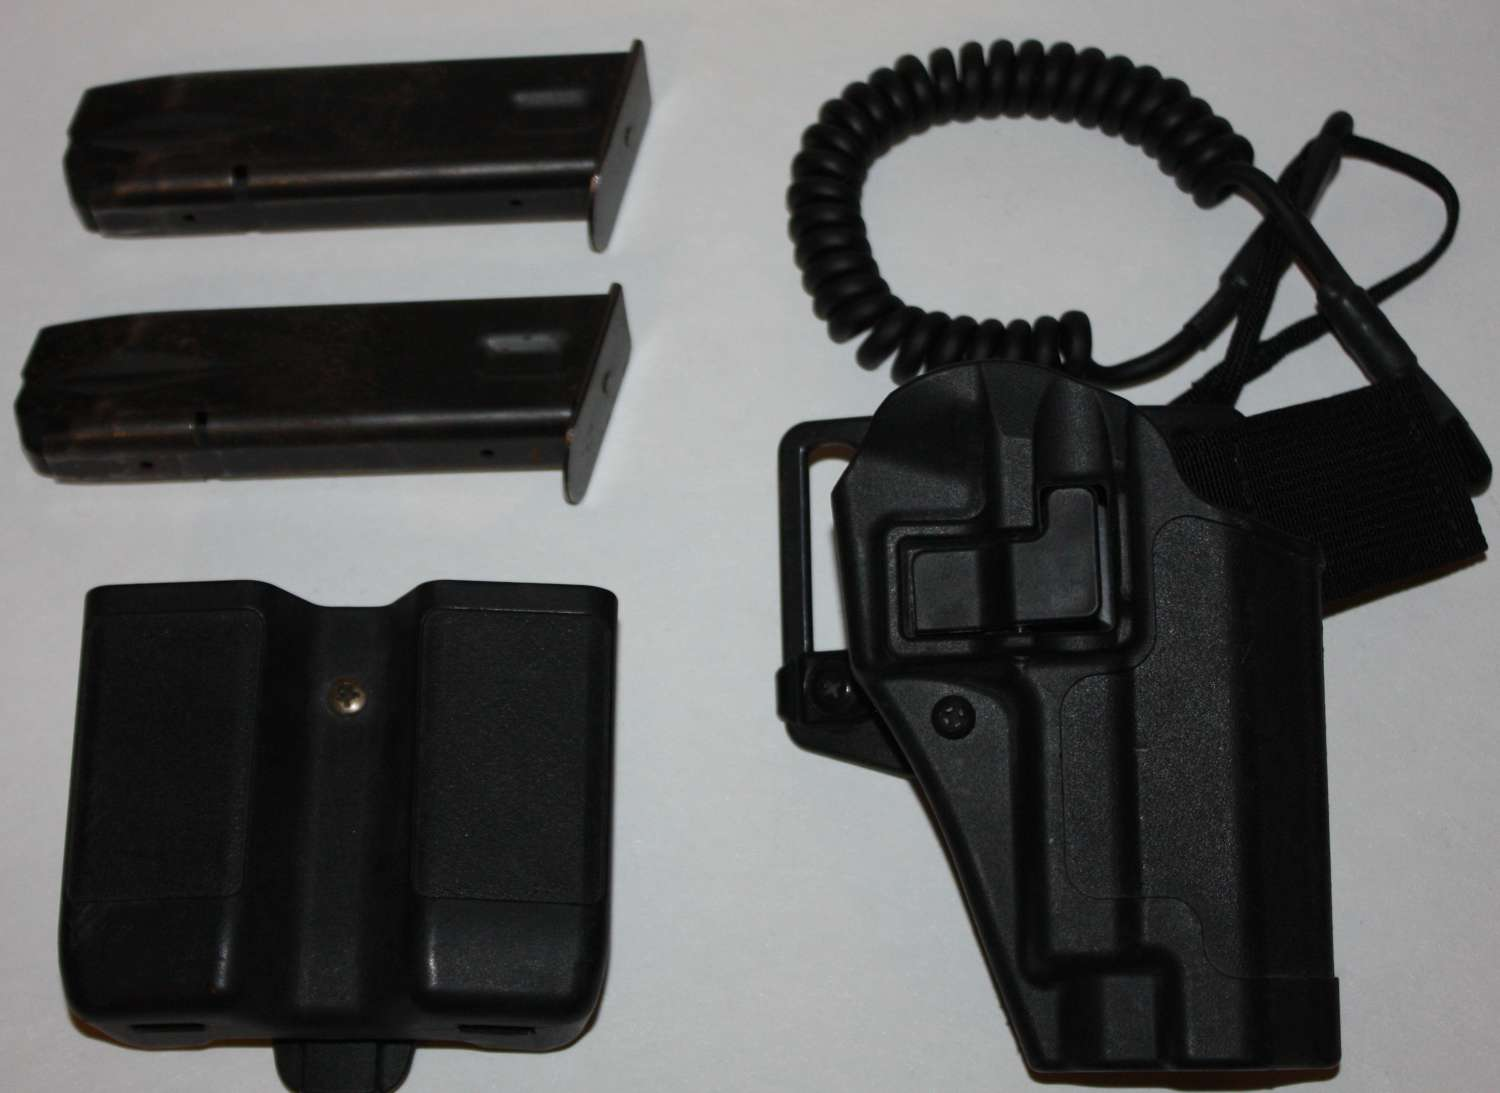 A BLACKHAWK CQC PISTOL HOLSTER AND MAG POUCH WITH 2 SIG SAUER CLIPS